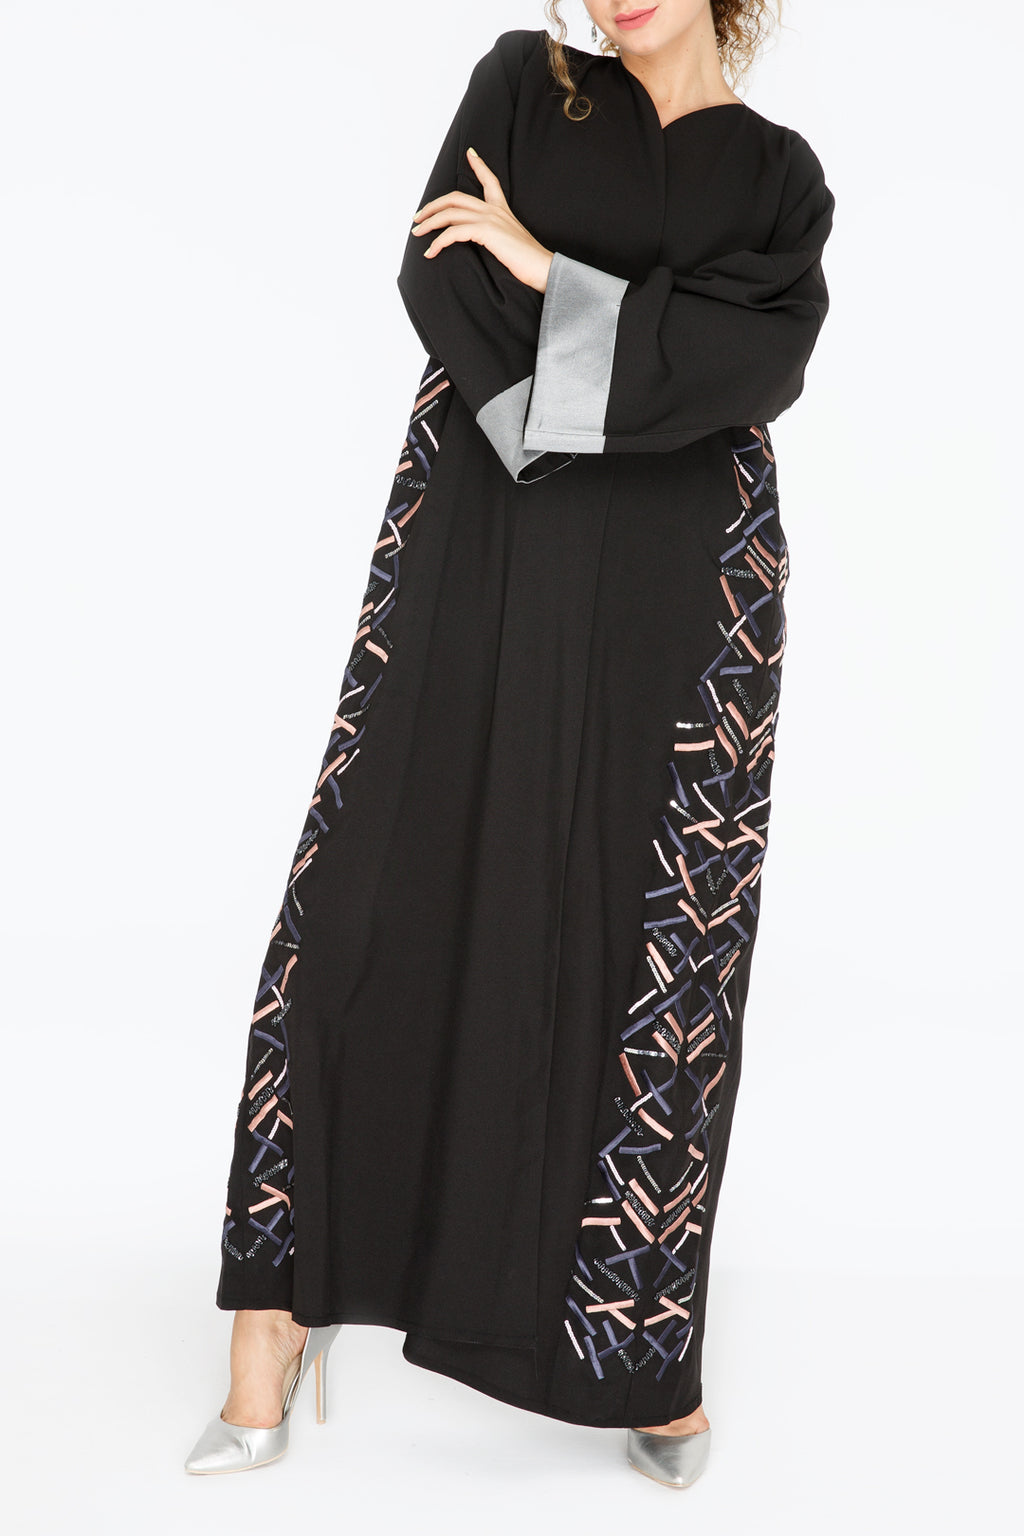 Blue and Pink Thread and Bead Work Abaya